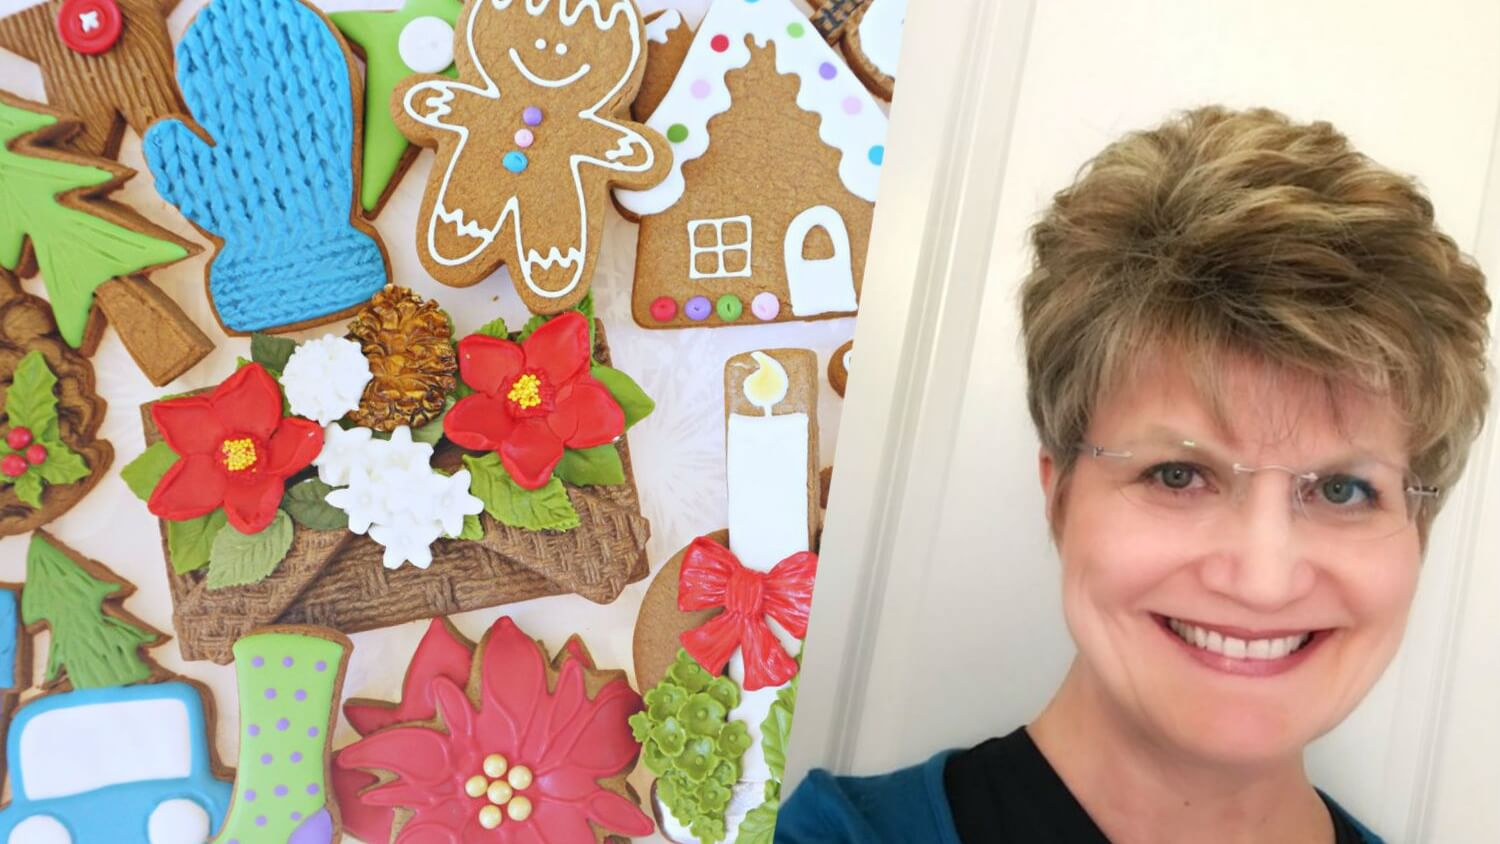 Midwest Grandmother Pam Sneed Is a 'Crazie' Vegan Cookie Making Machine